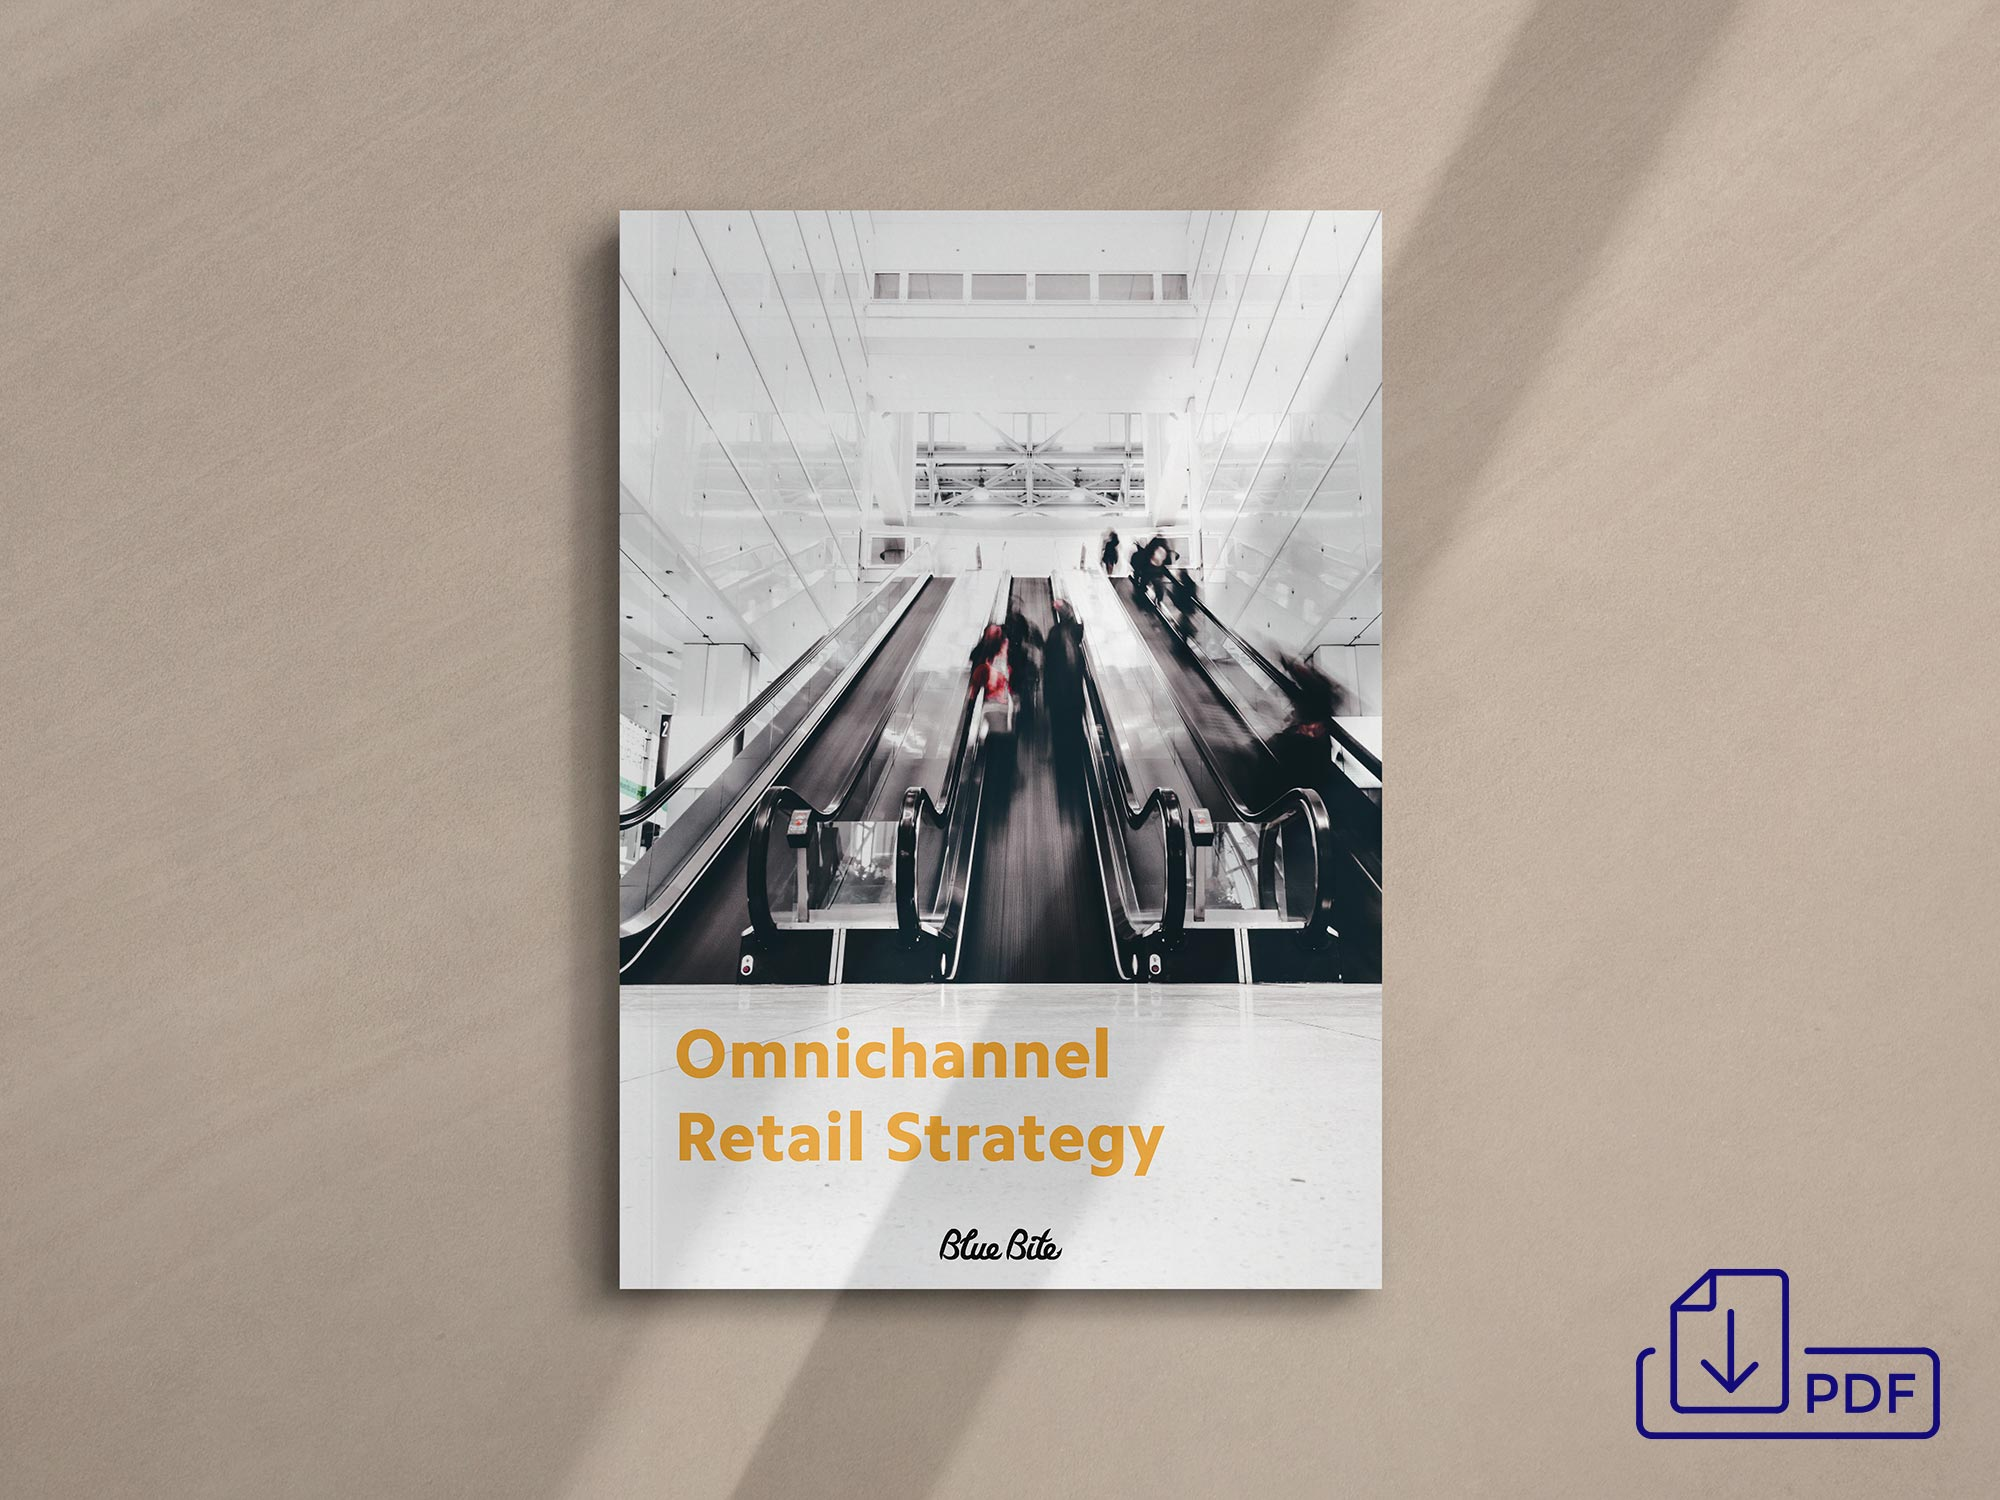 Get the Omnichannel Retail Strategy PDF